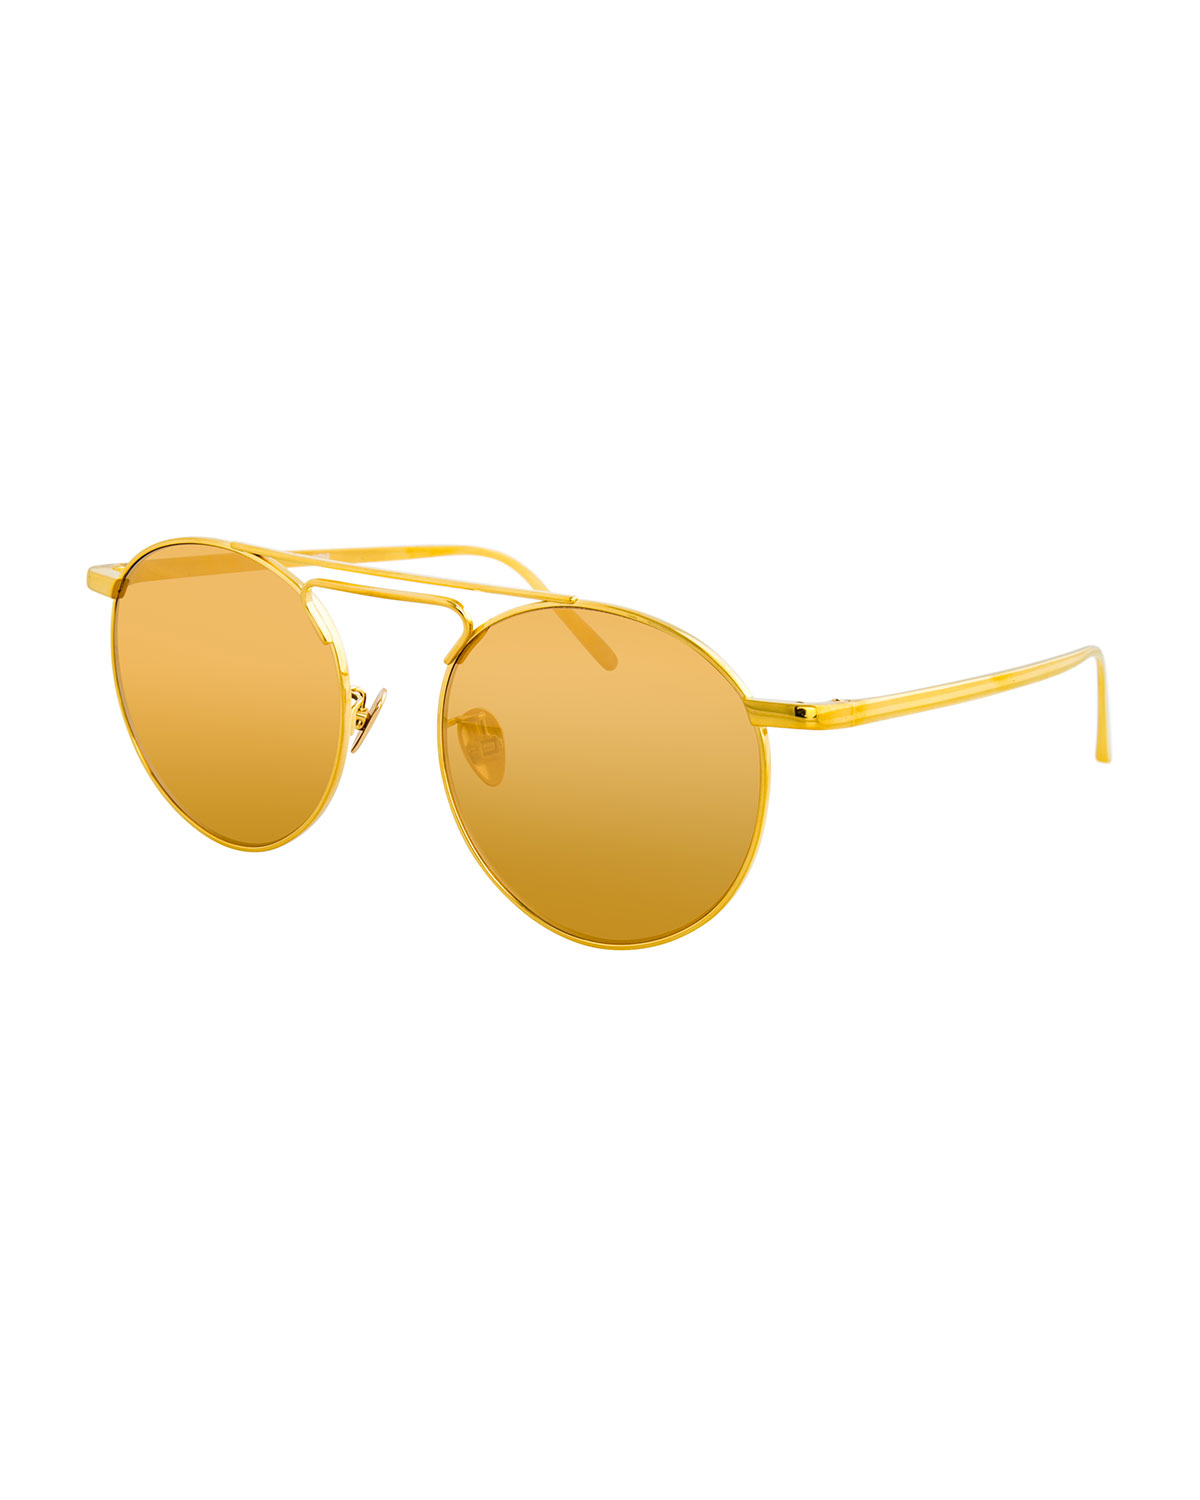 c7c9294c21b Linda Farrow Round Double-Bridge Sunglasses